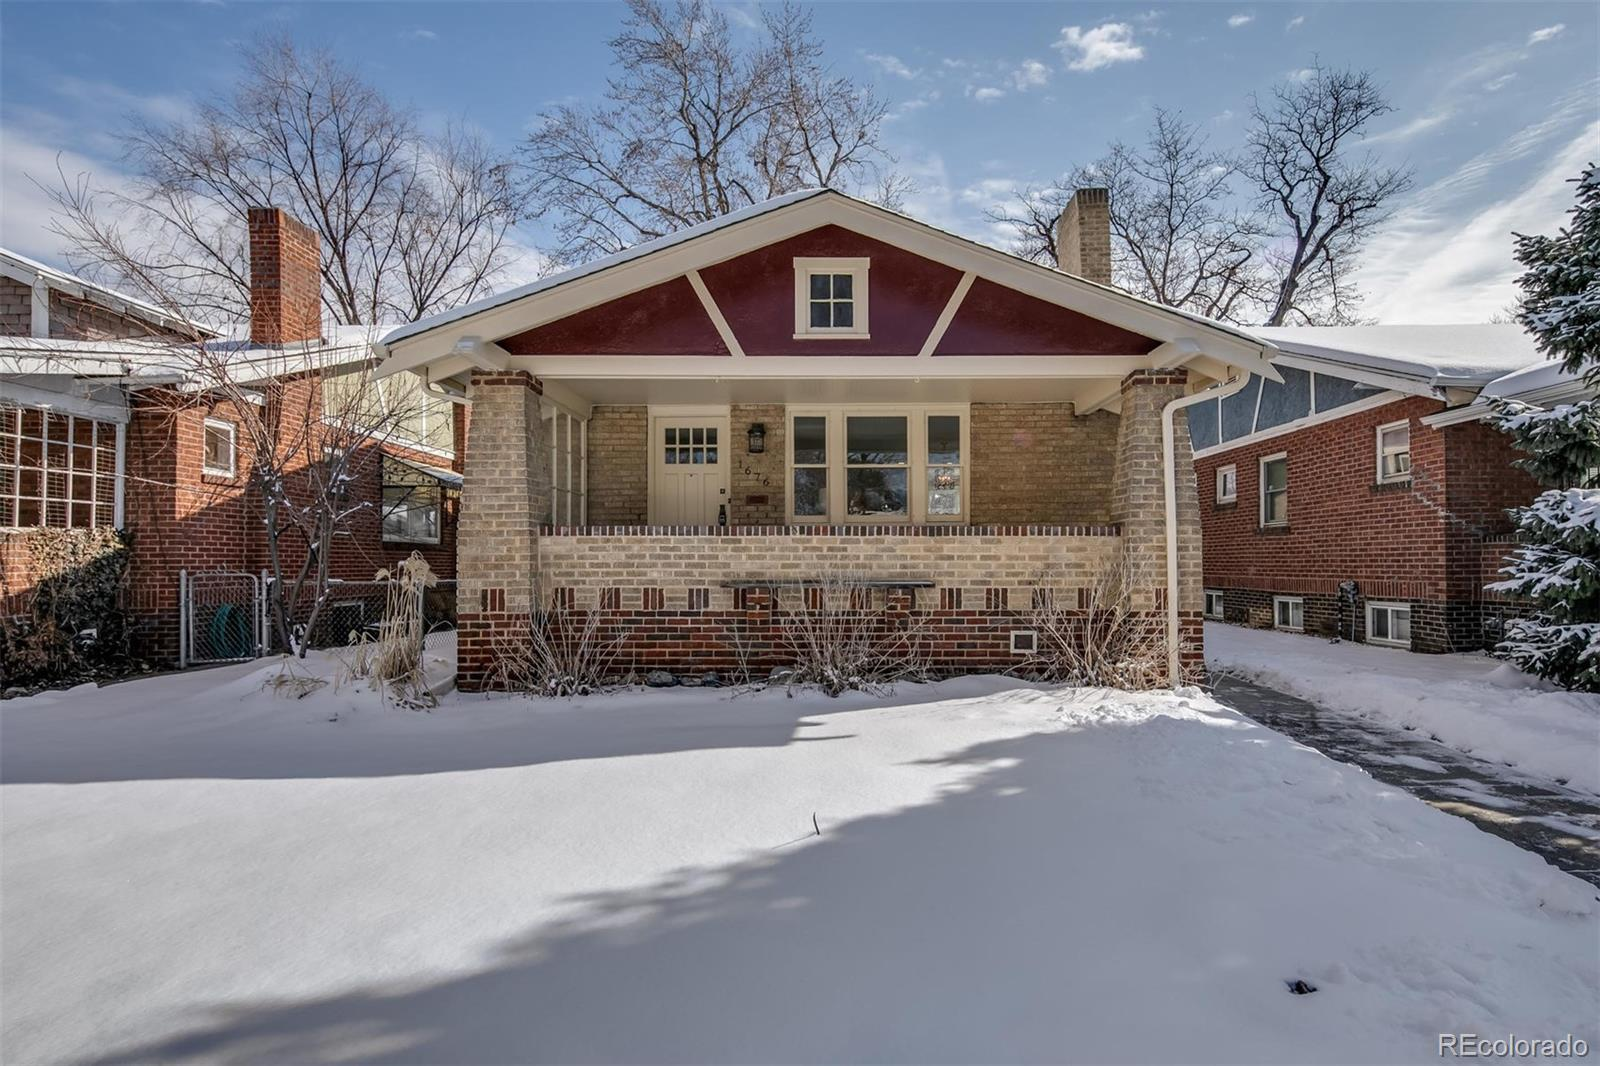 MLS# 5026749 - 1 - 1676 Garfield Street, Denver, CO 80206